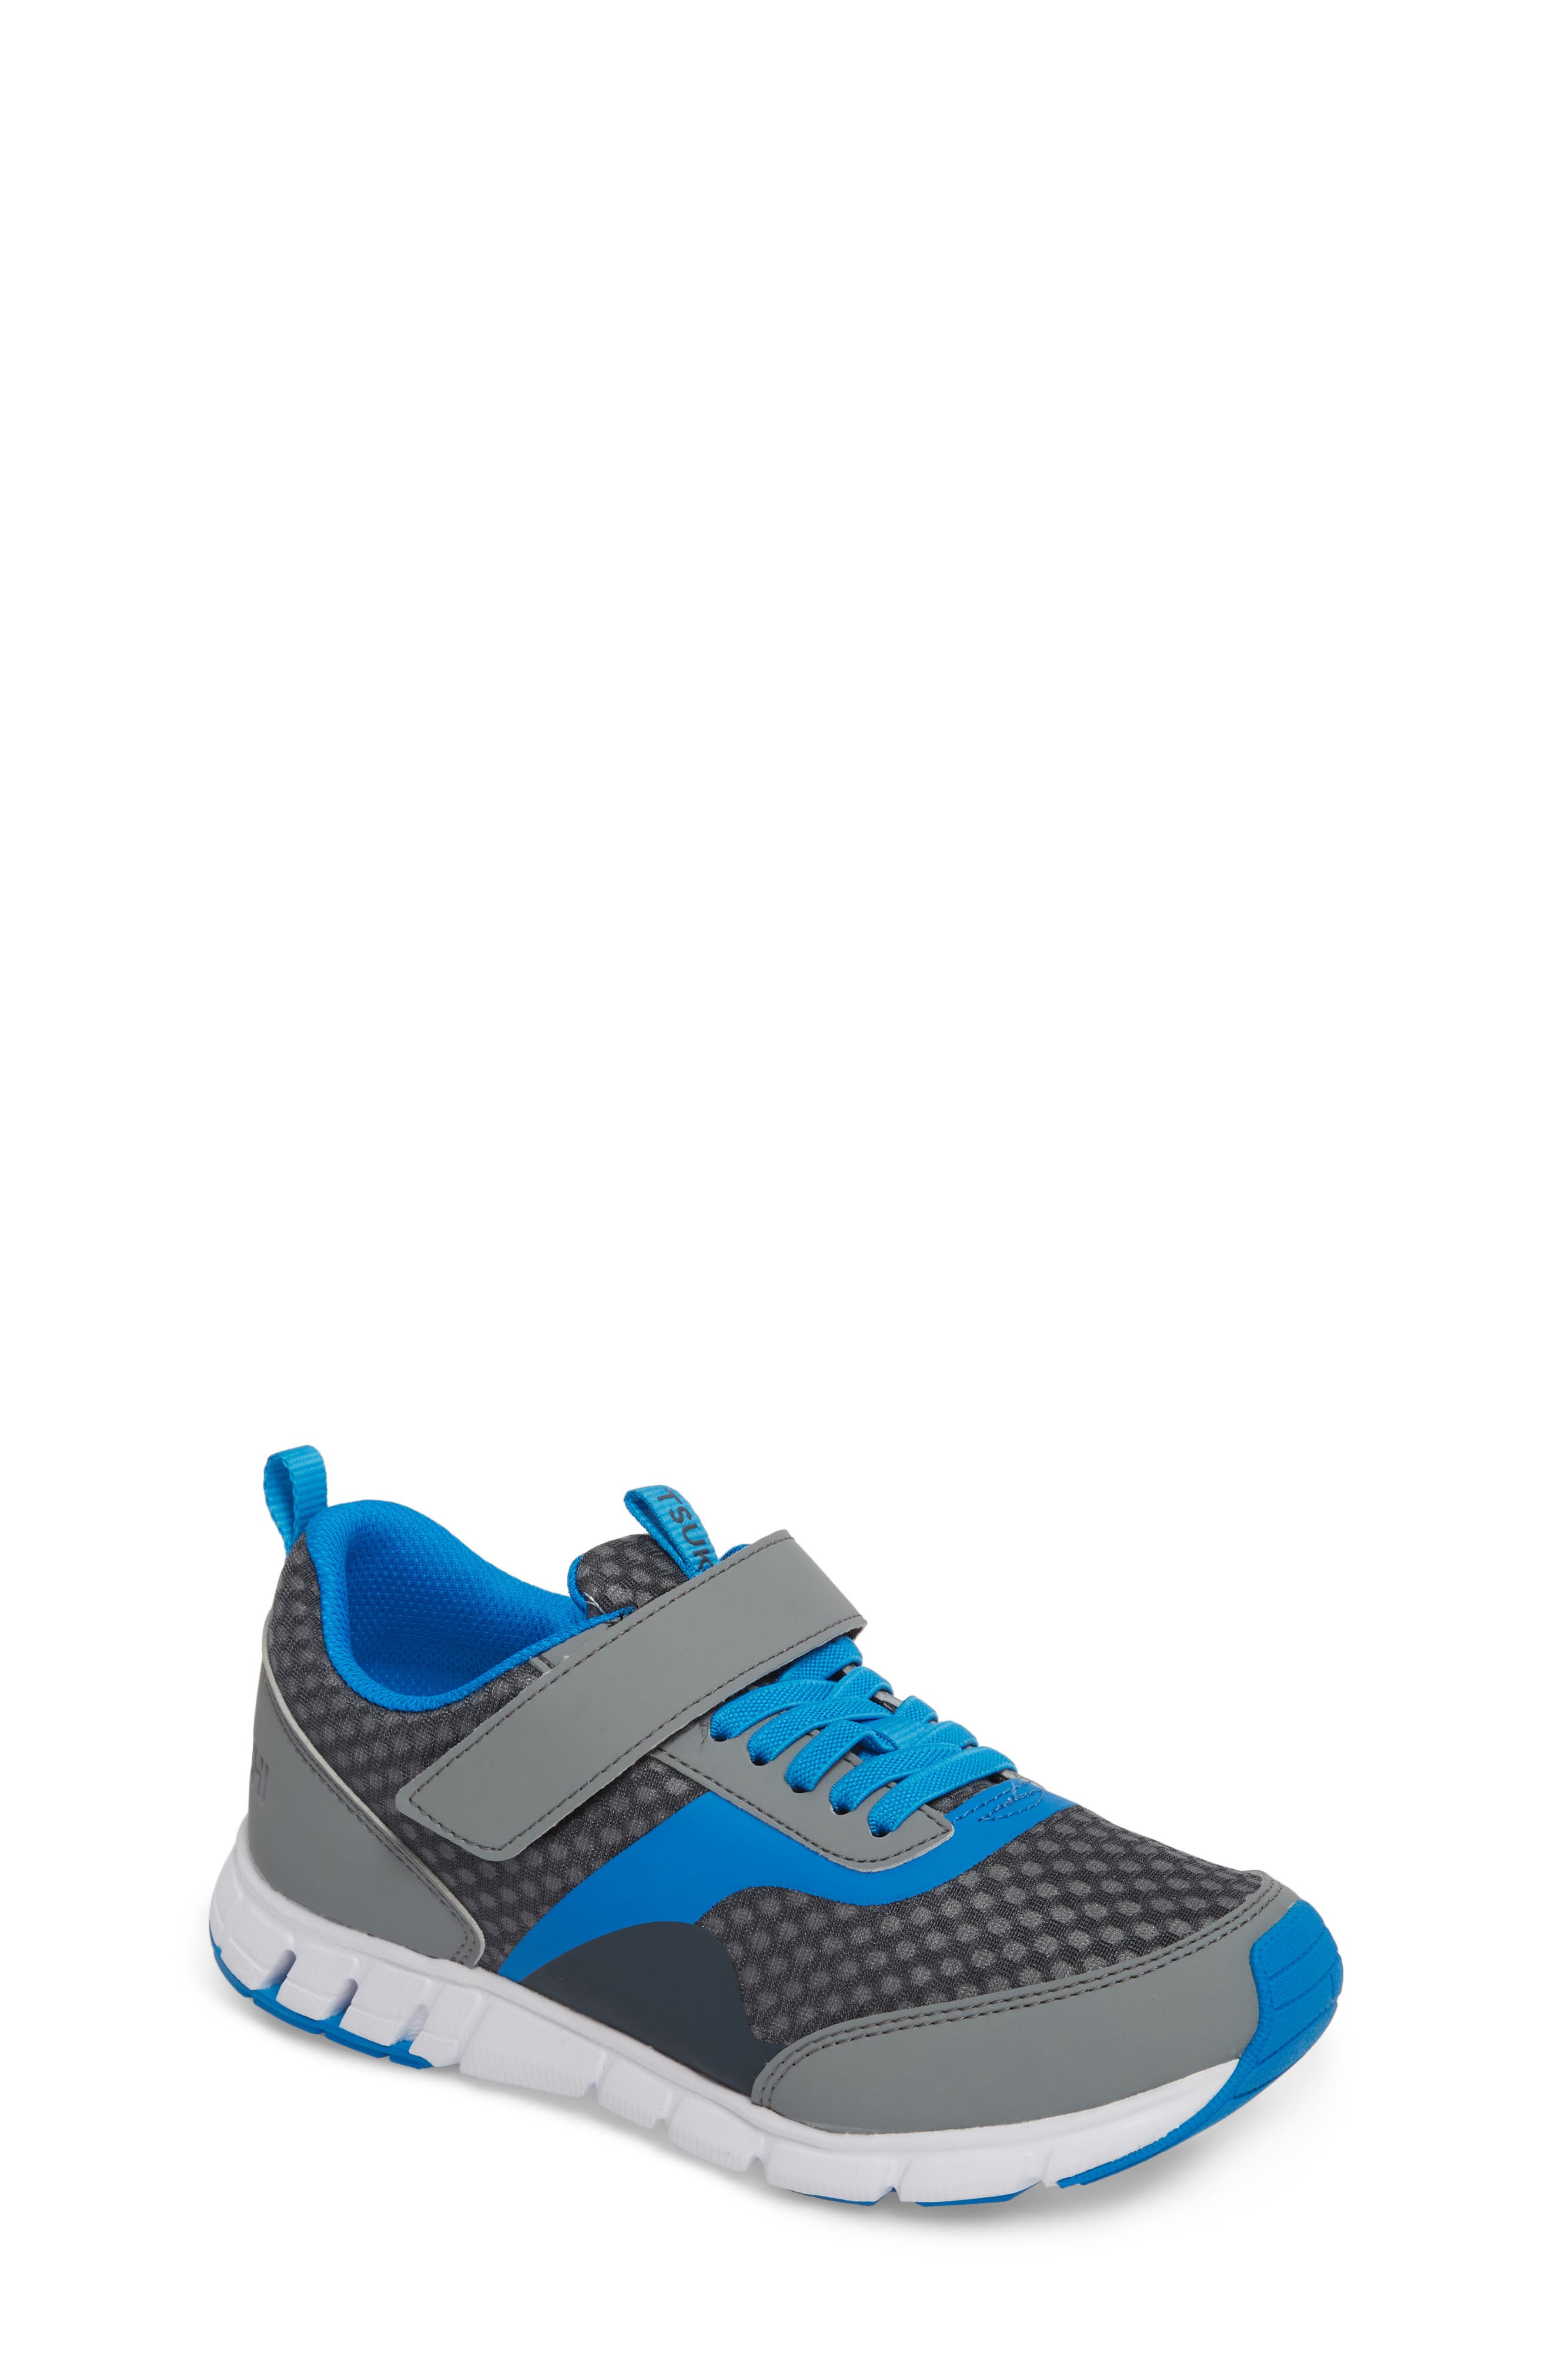 Sonic Washable Sneaker,                         Main,                         color, Gray/ Royal